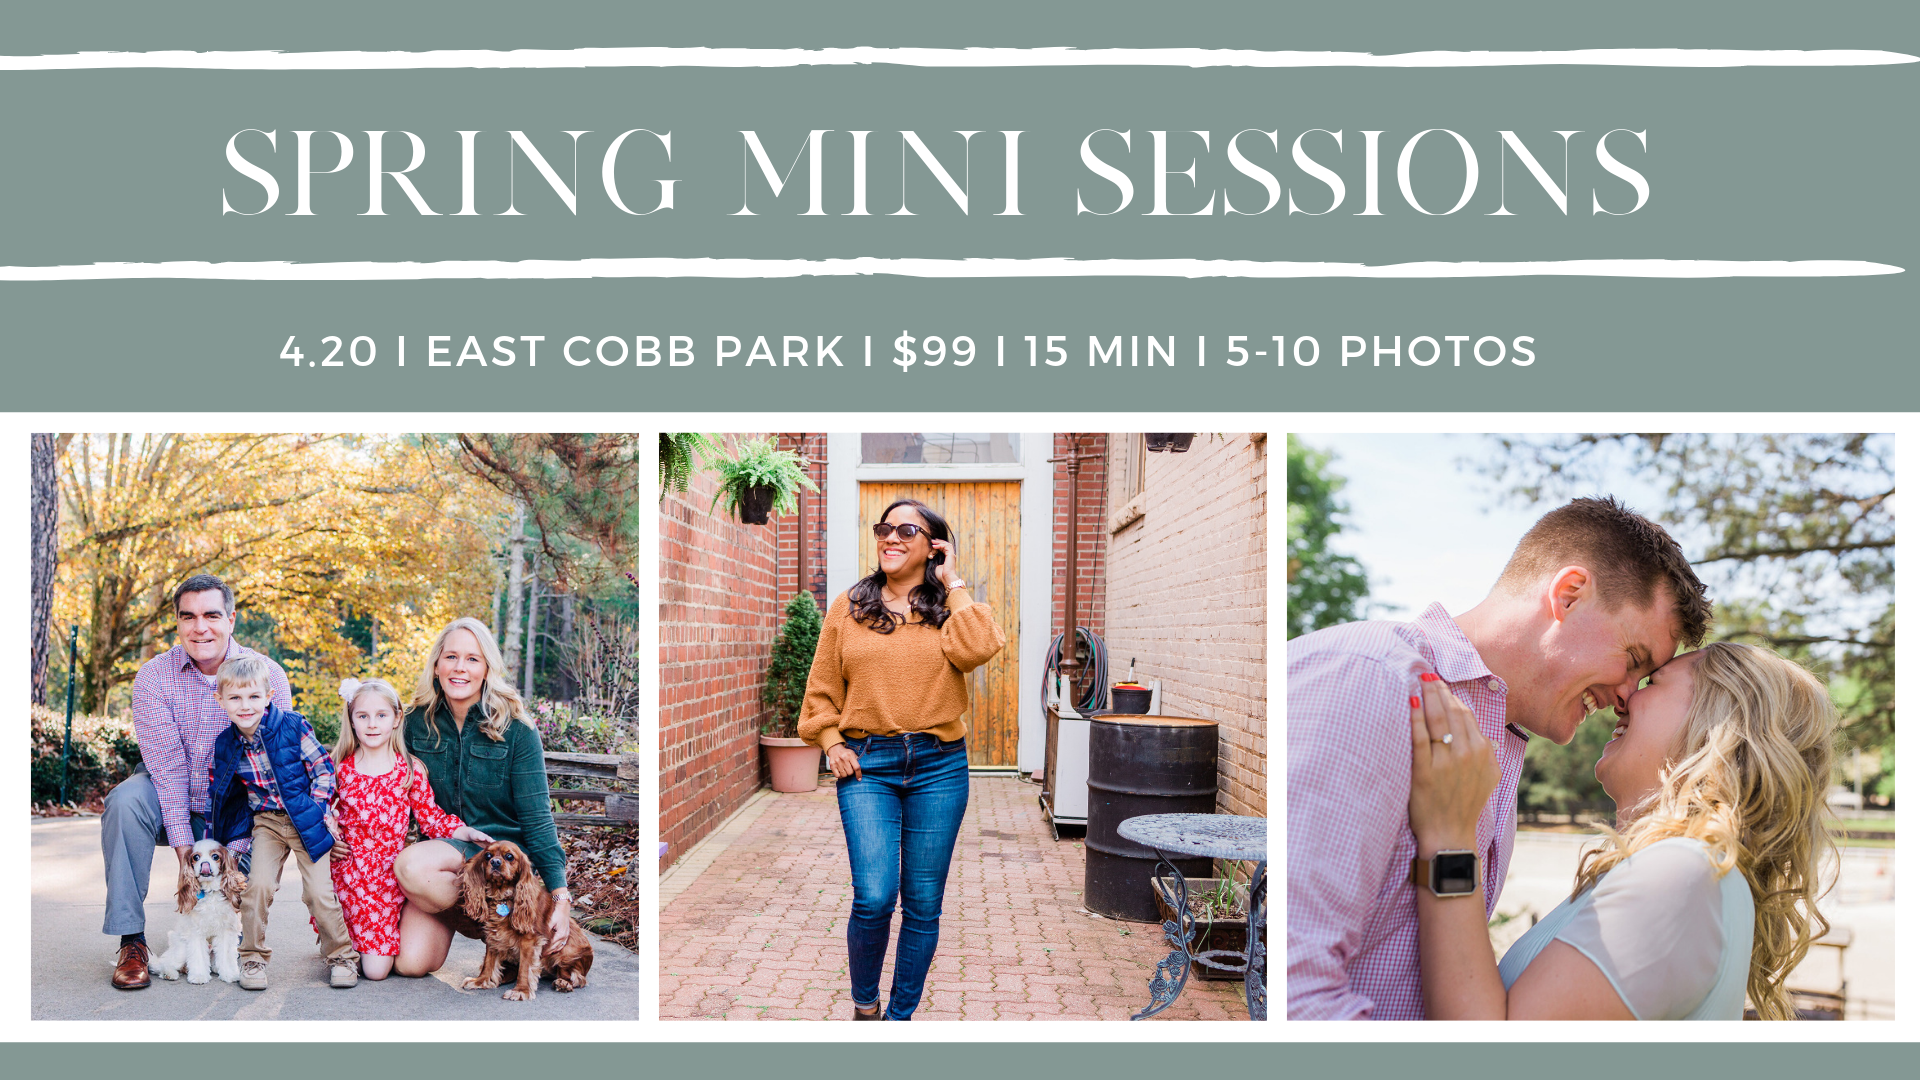 Copy of spring mini sessions.png